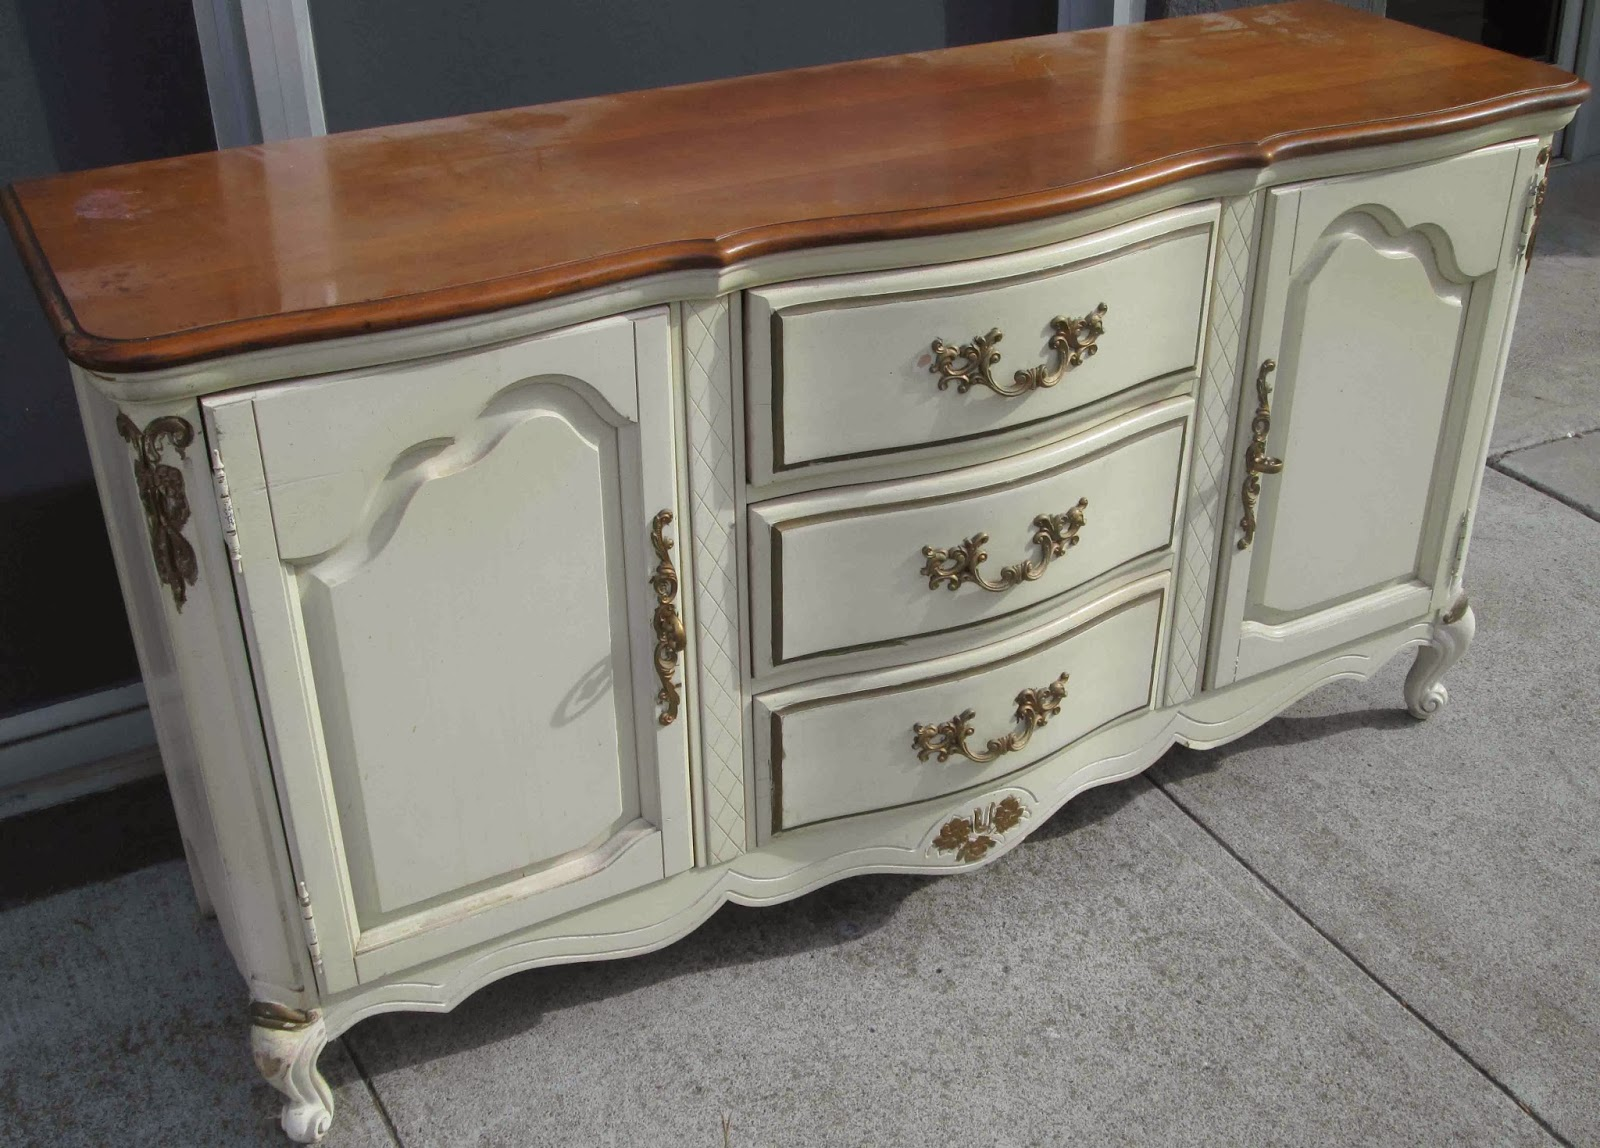 uhuru furniture collectibles sold french provincial. Black Bedroom Furniture Sets. Home Design Ideas